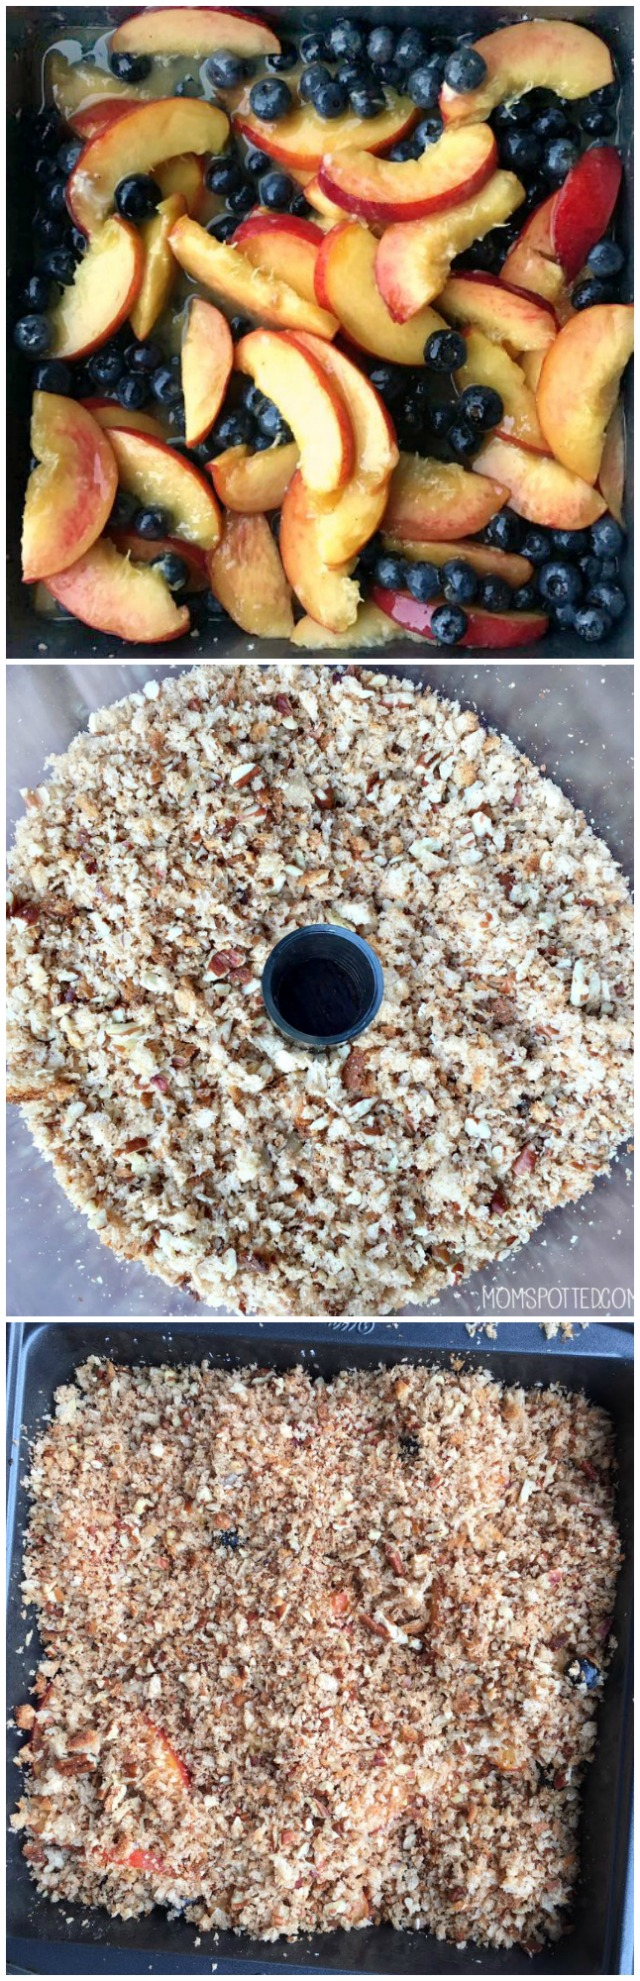 Peach and Blueberry Oat Crisp Recipe Collage up